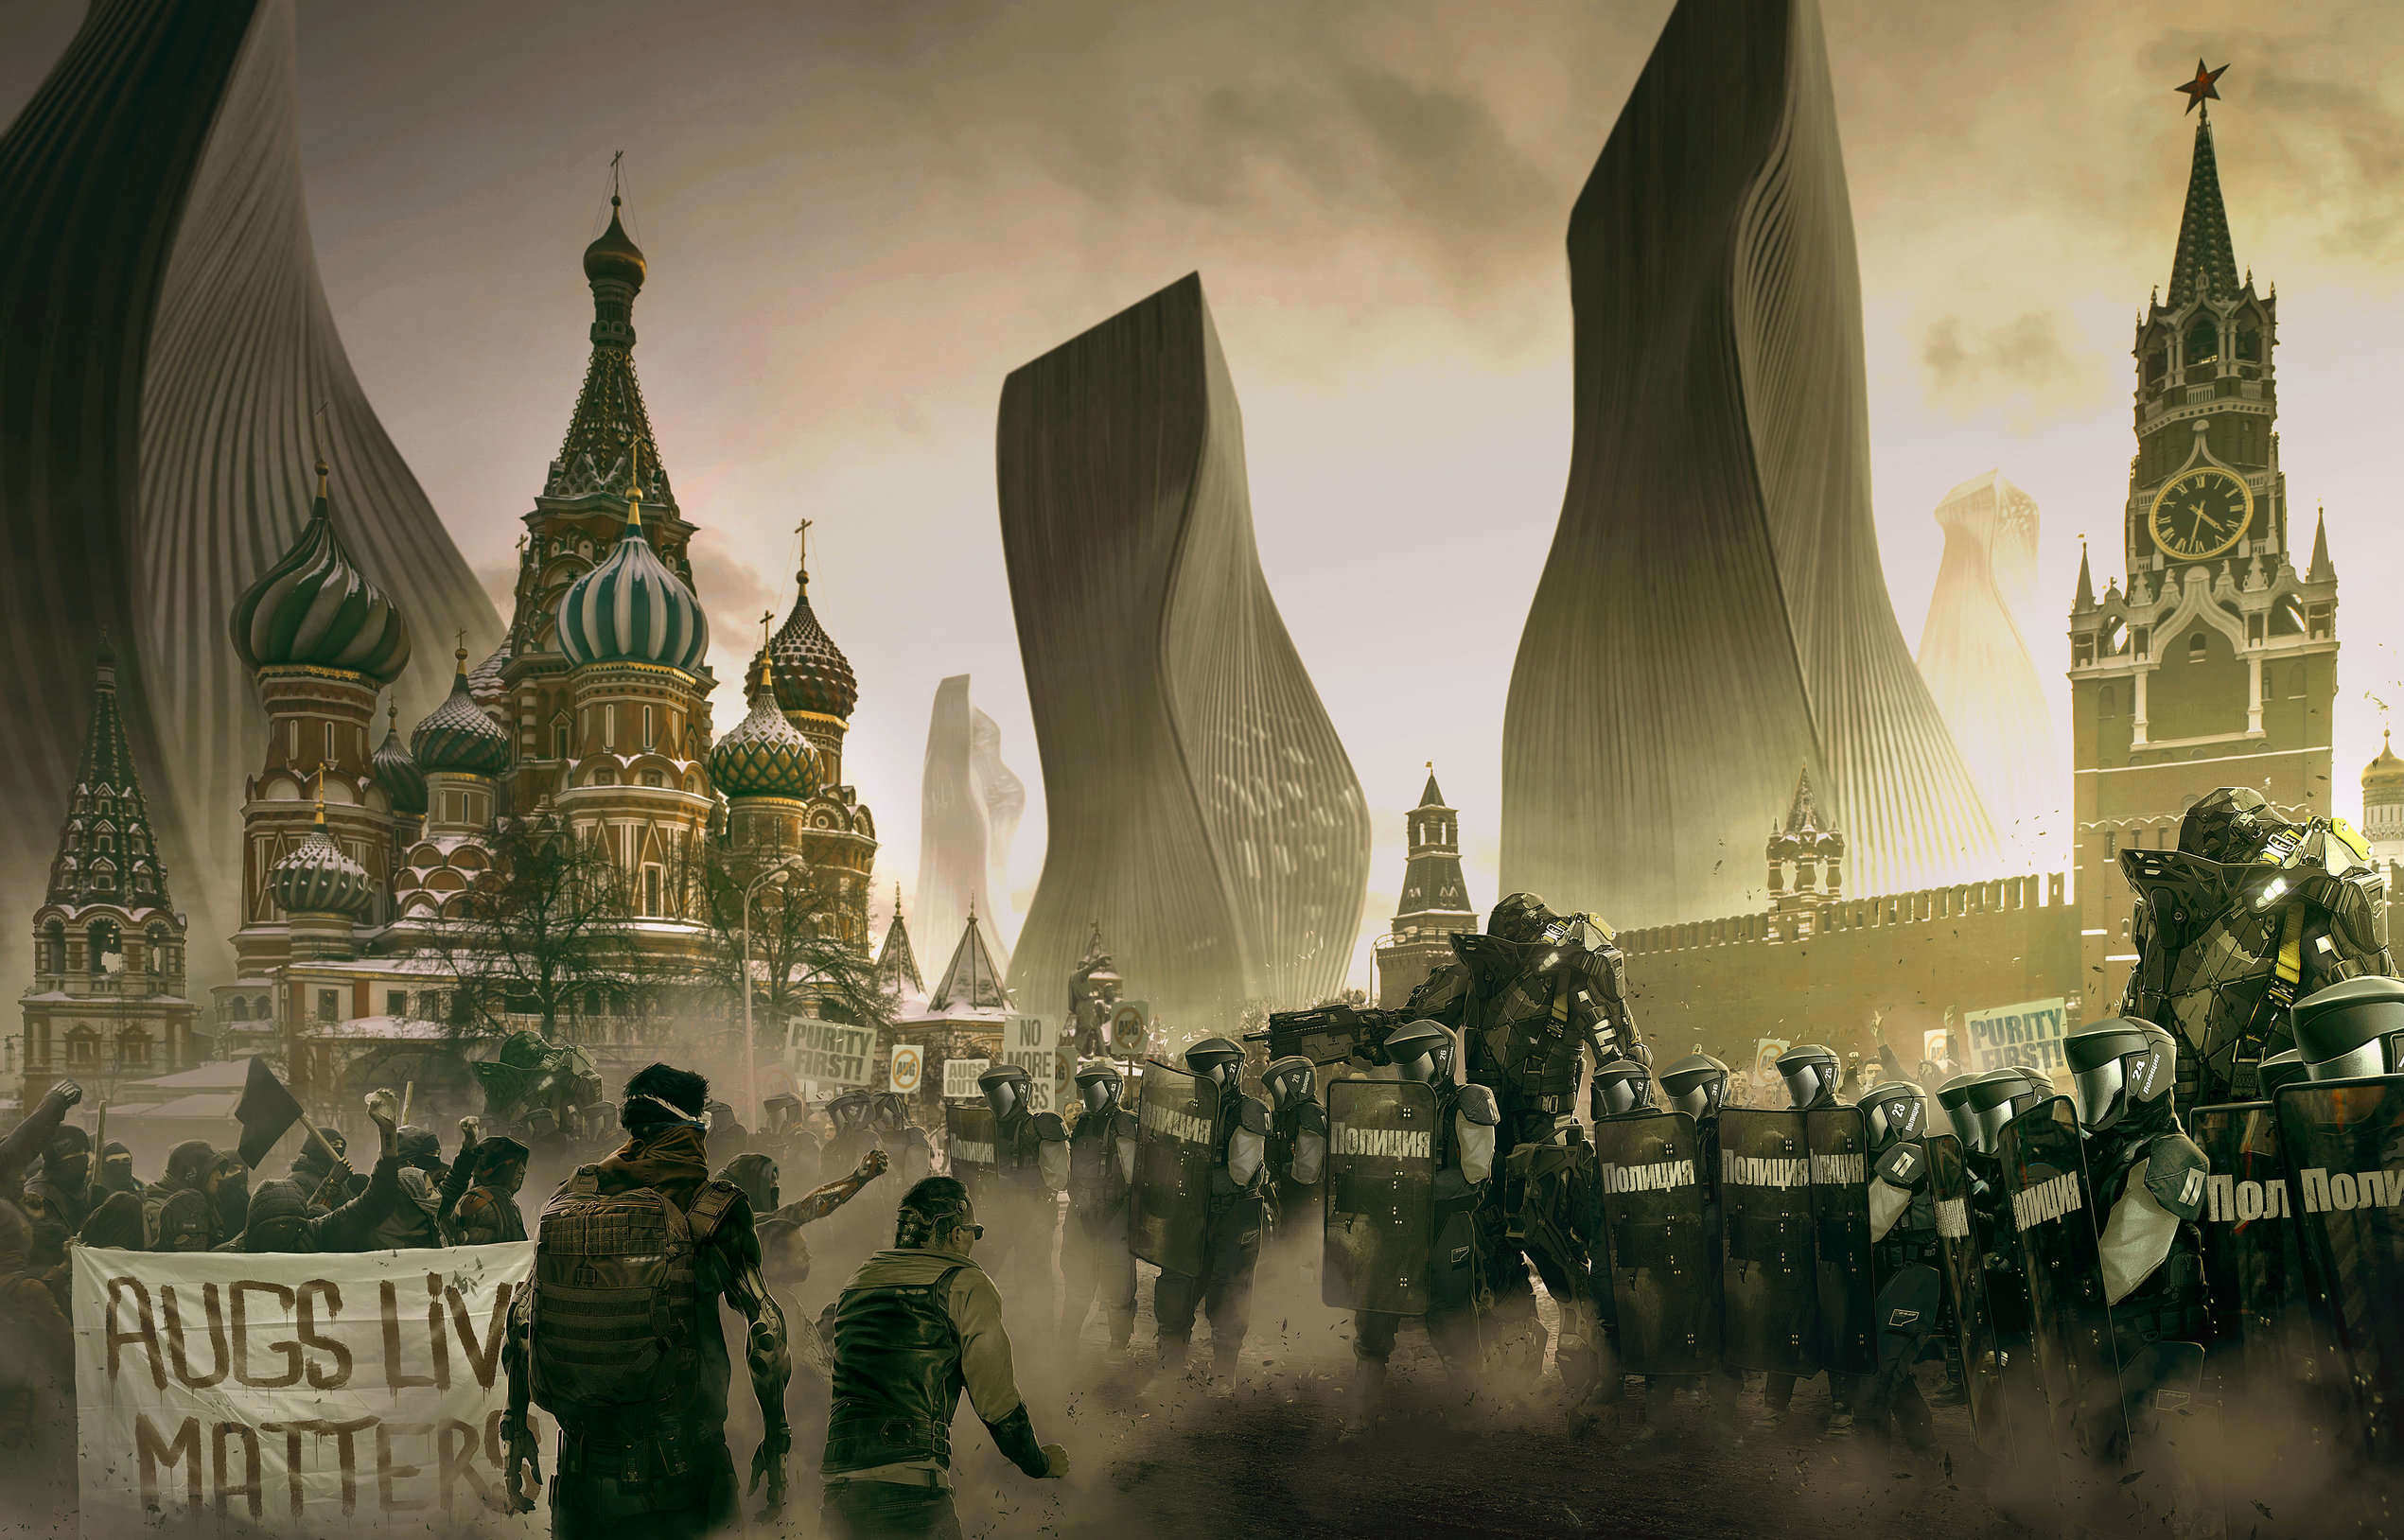 rsz_moscow_cities_of_2029_dxmd